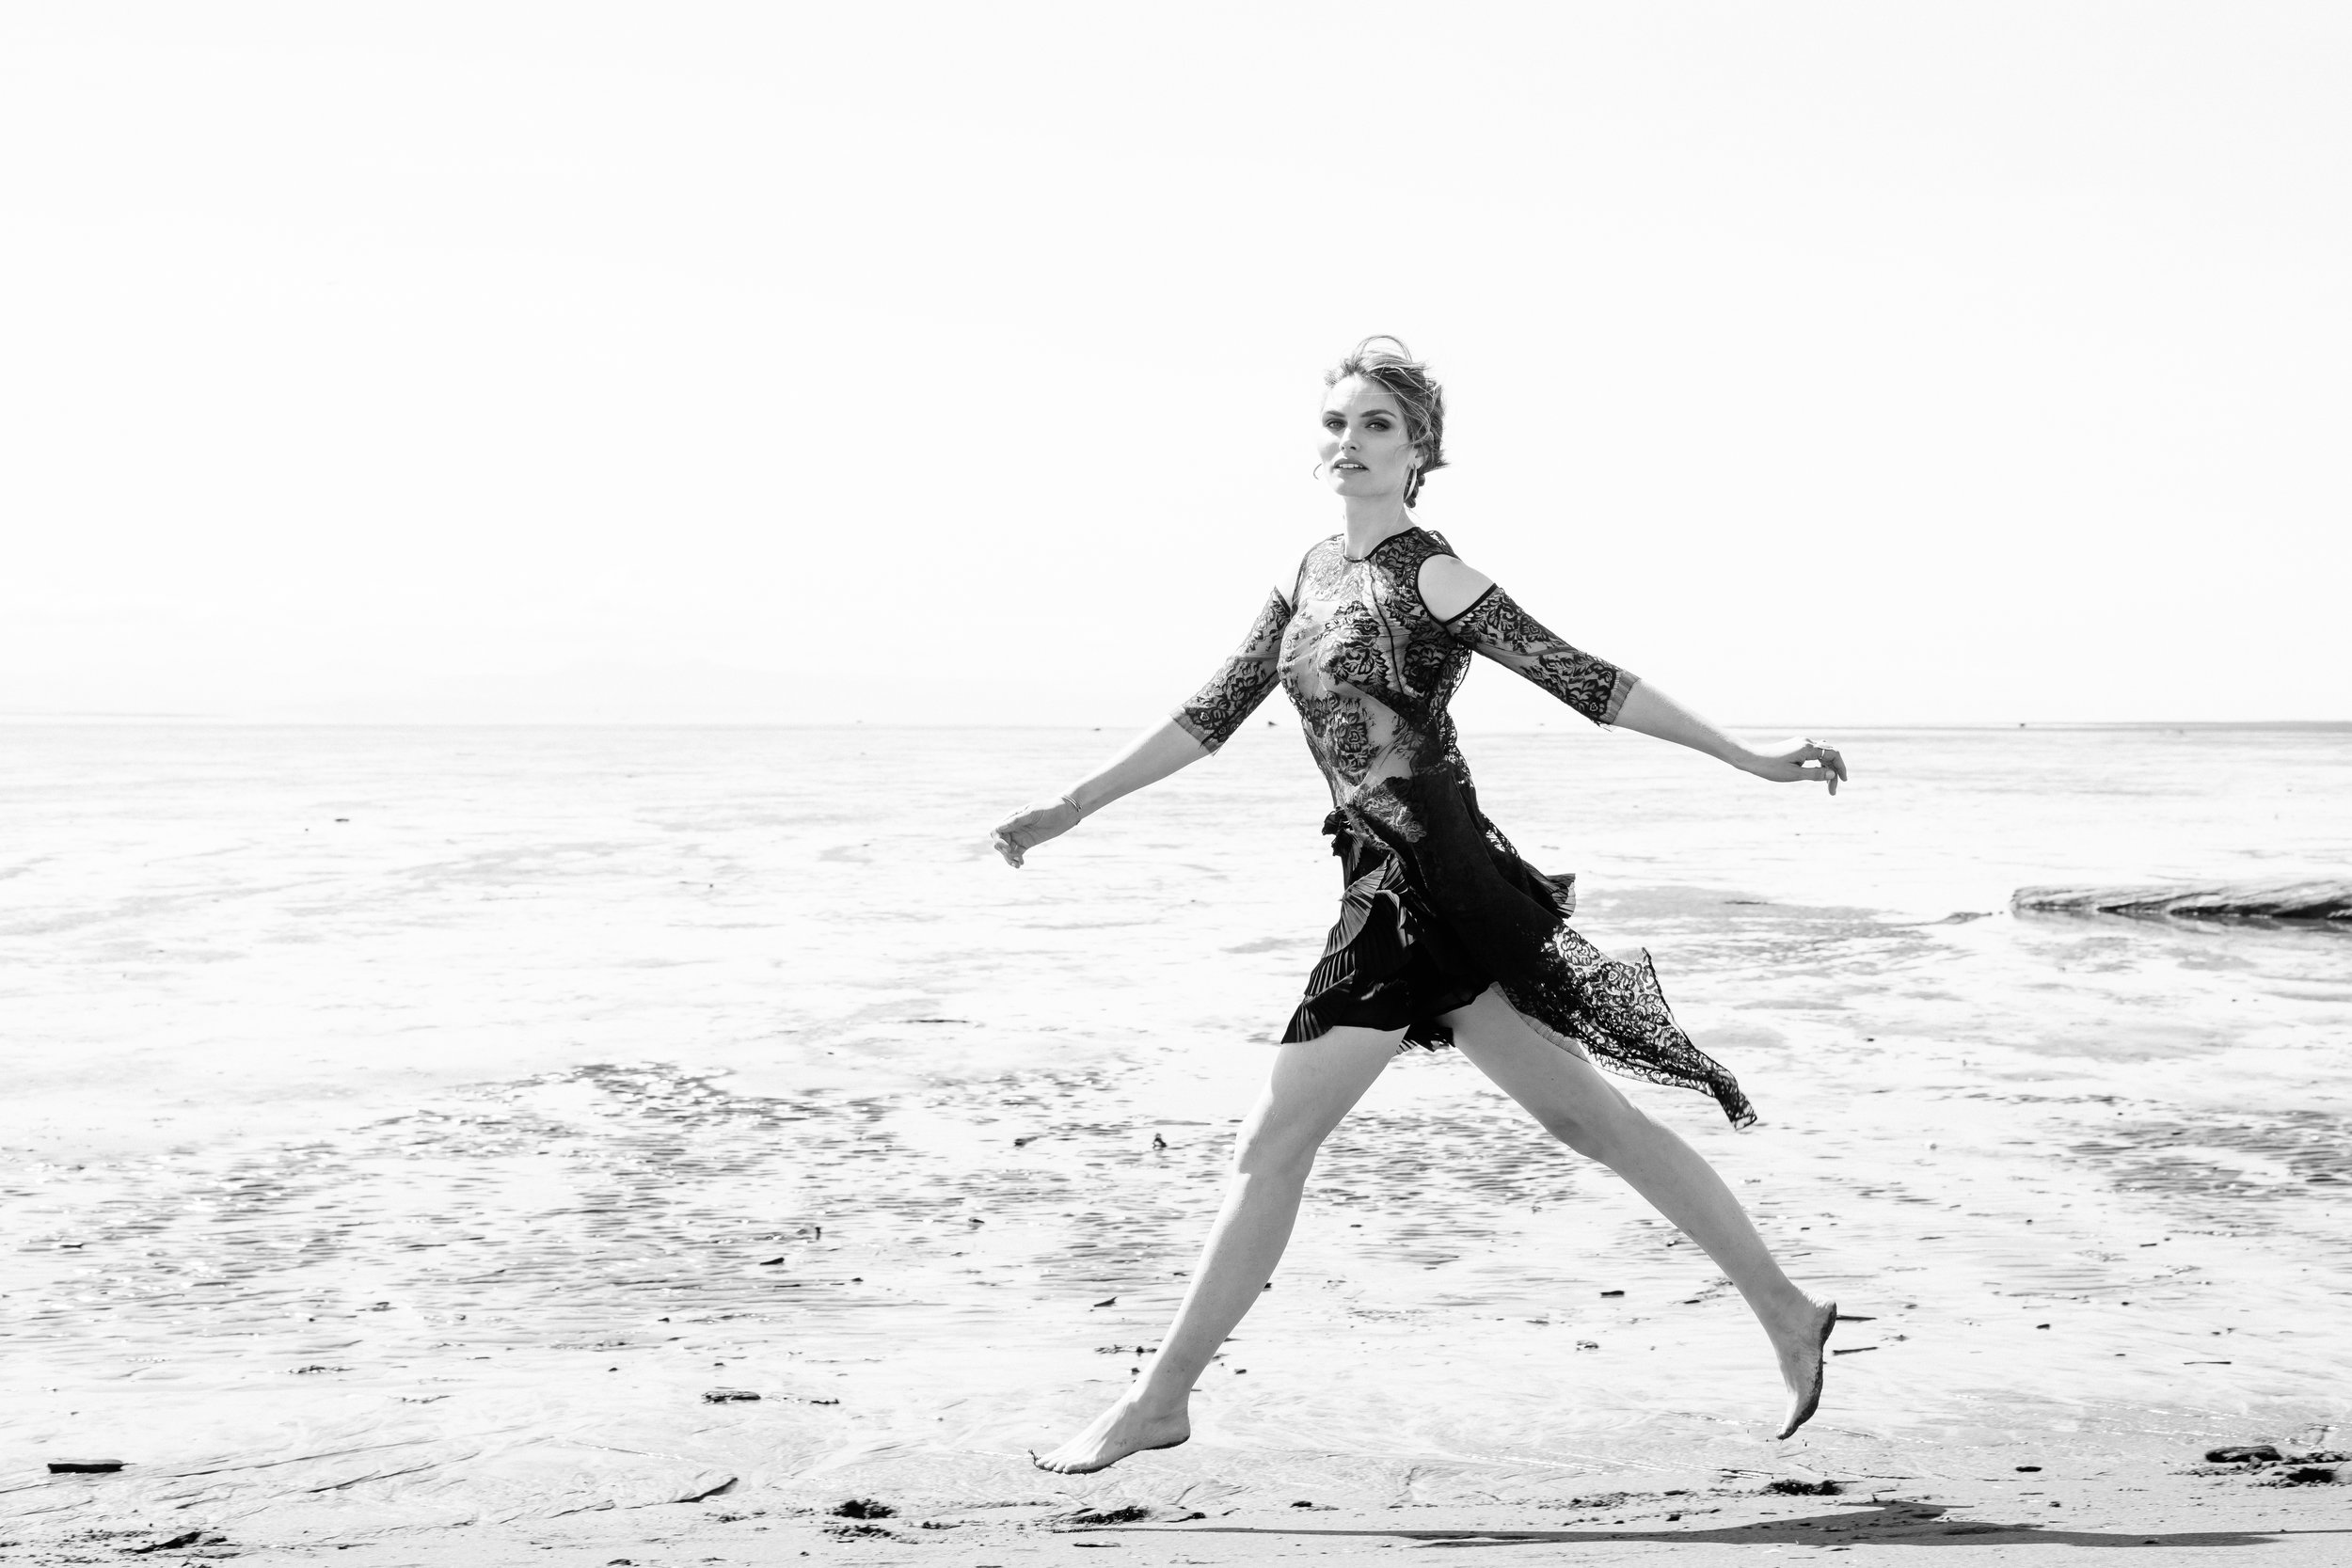 Black and white photo of model running on the beach.